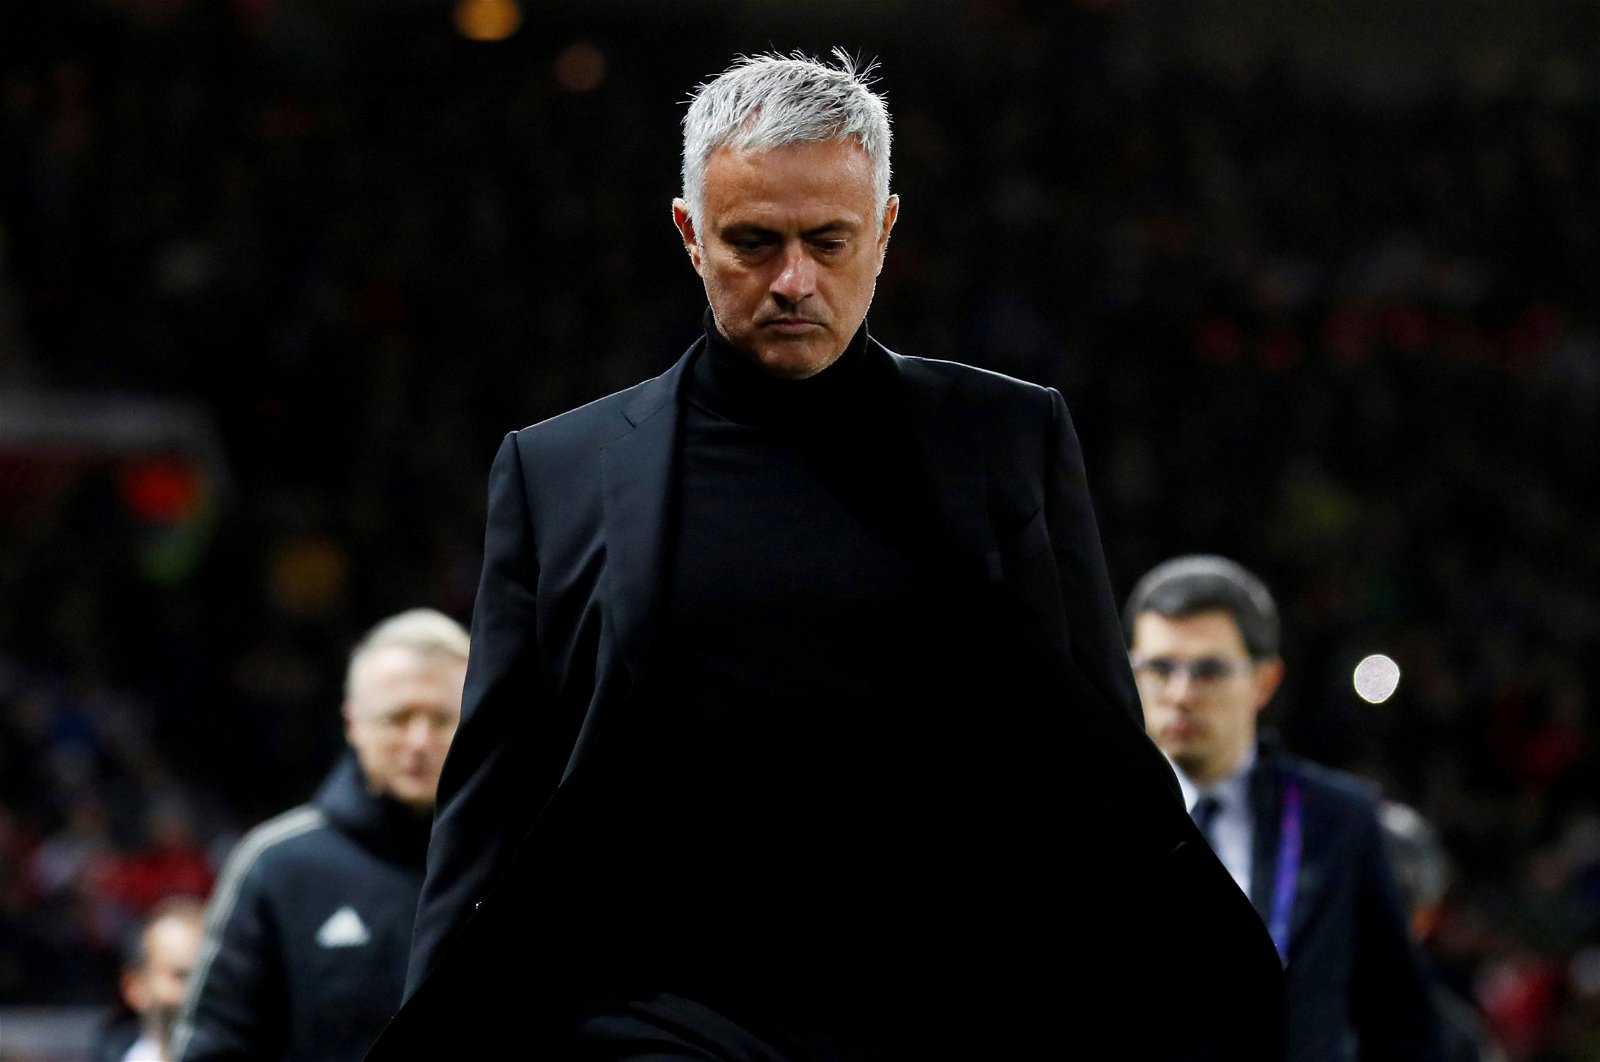 Jose Mourinho looks down